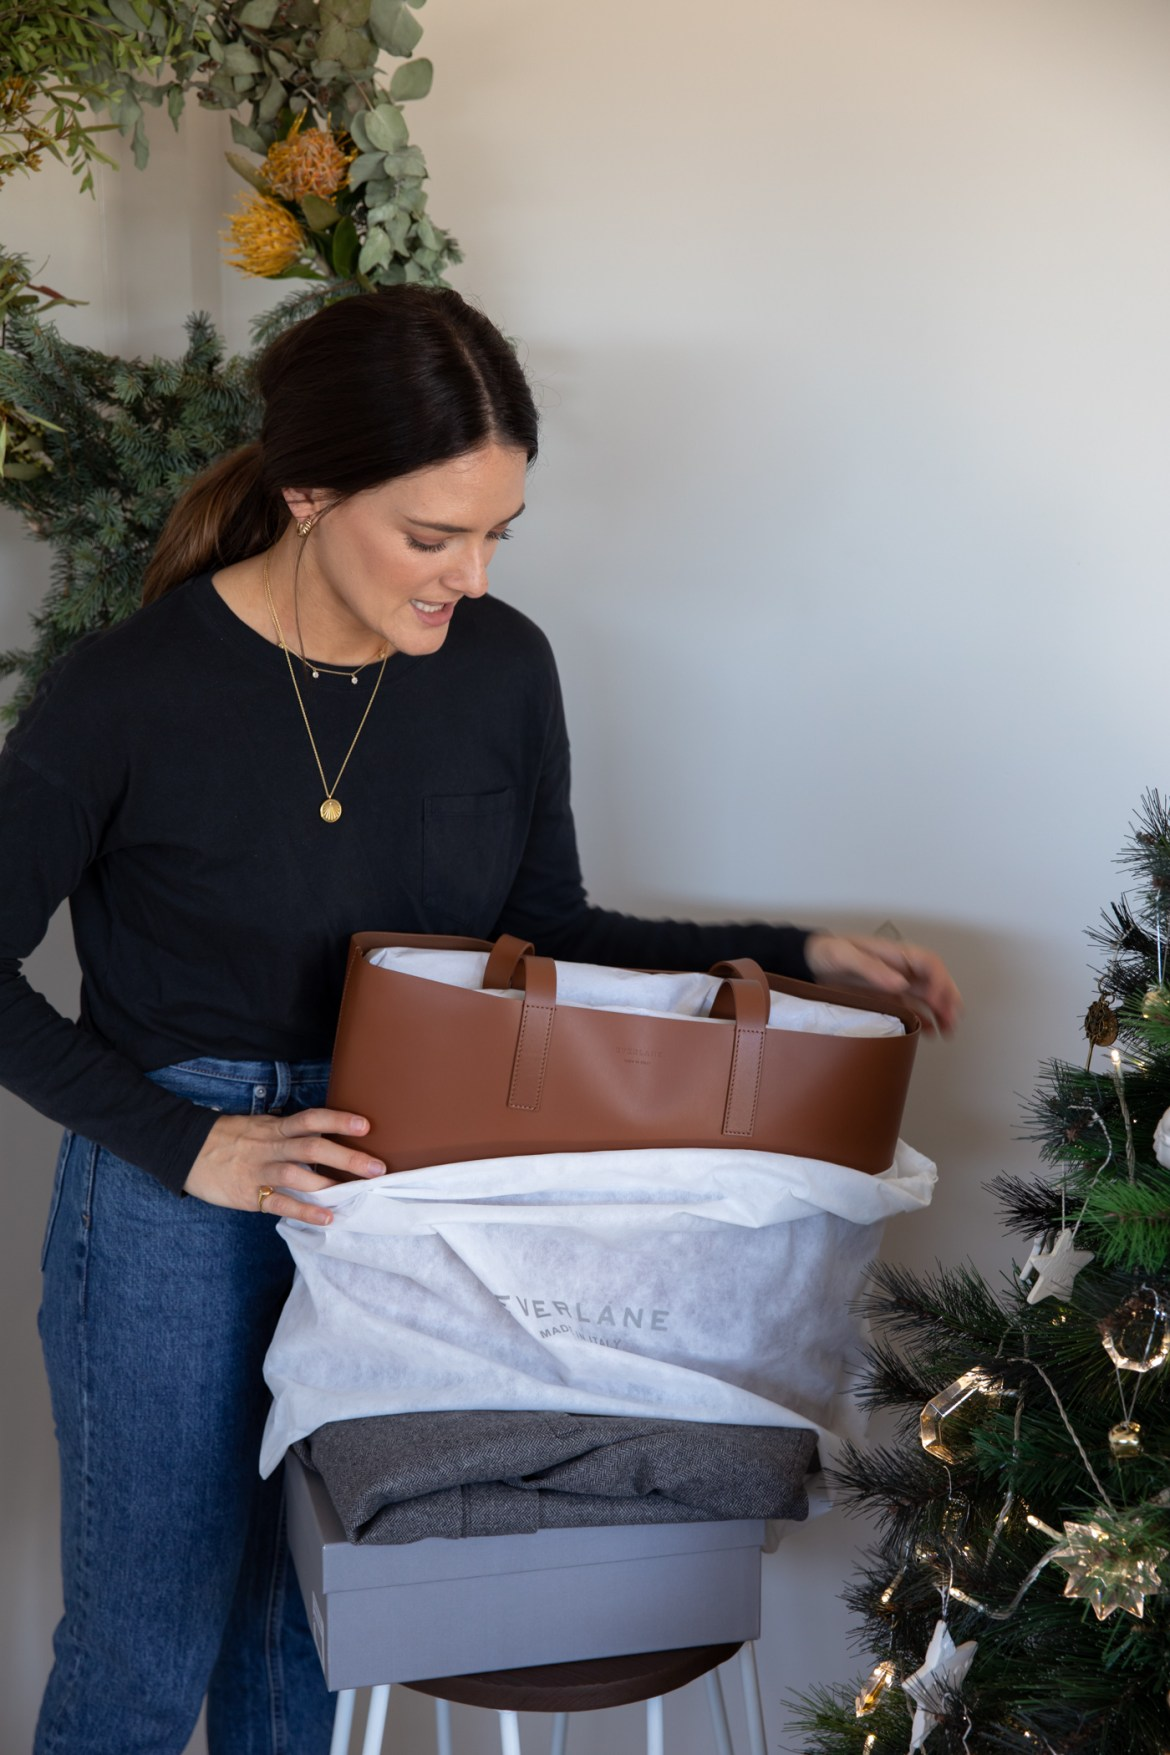 The Day Market Tote from Everlane for Christmas